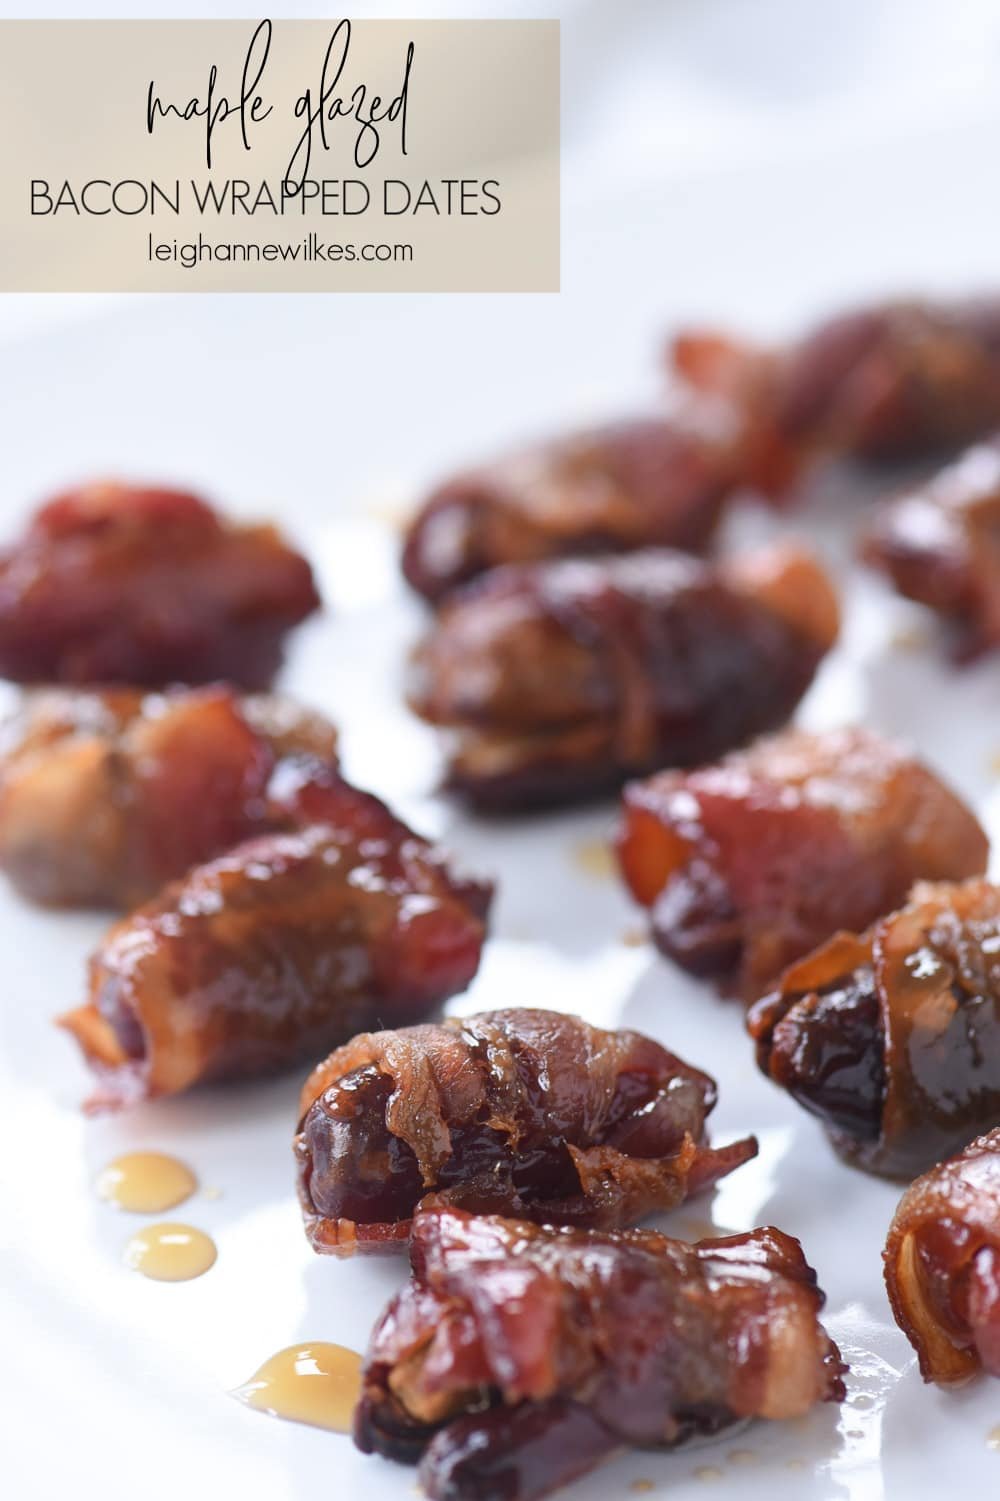 bacon wrapped dates on a plate